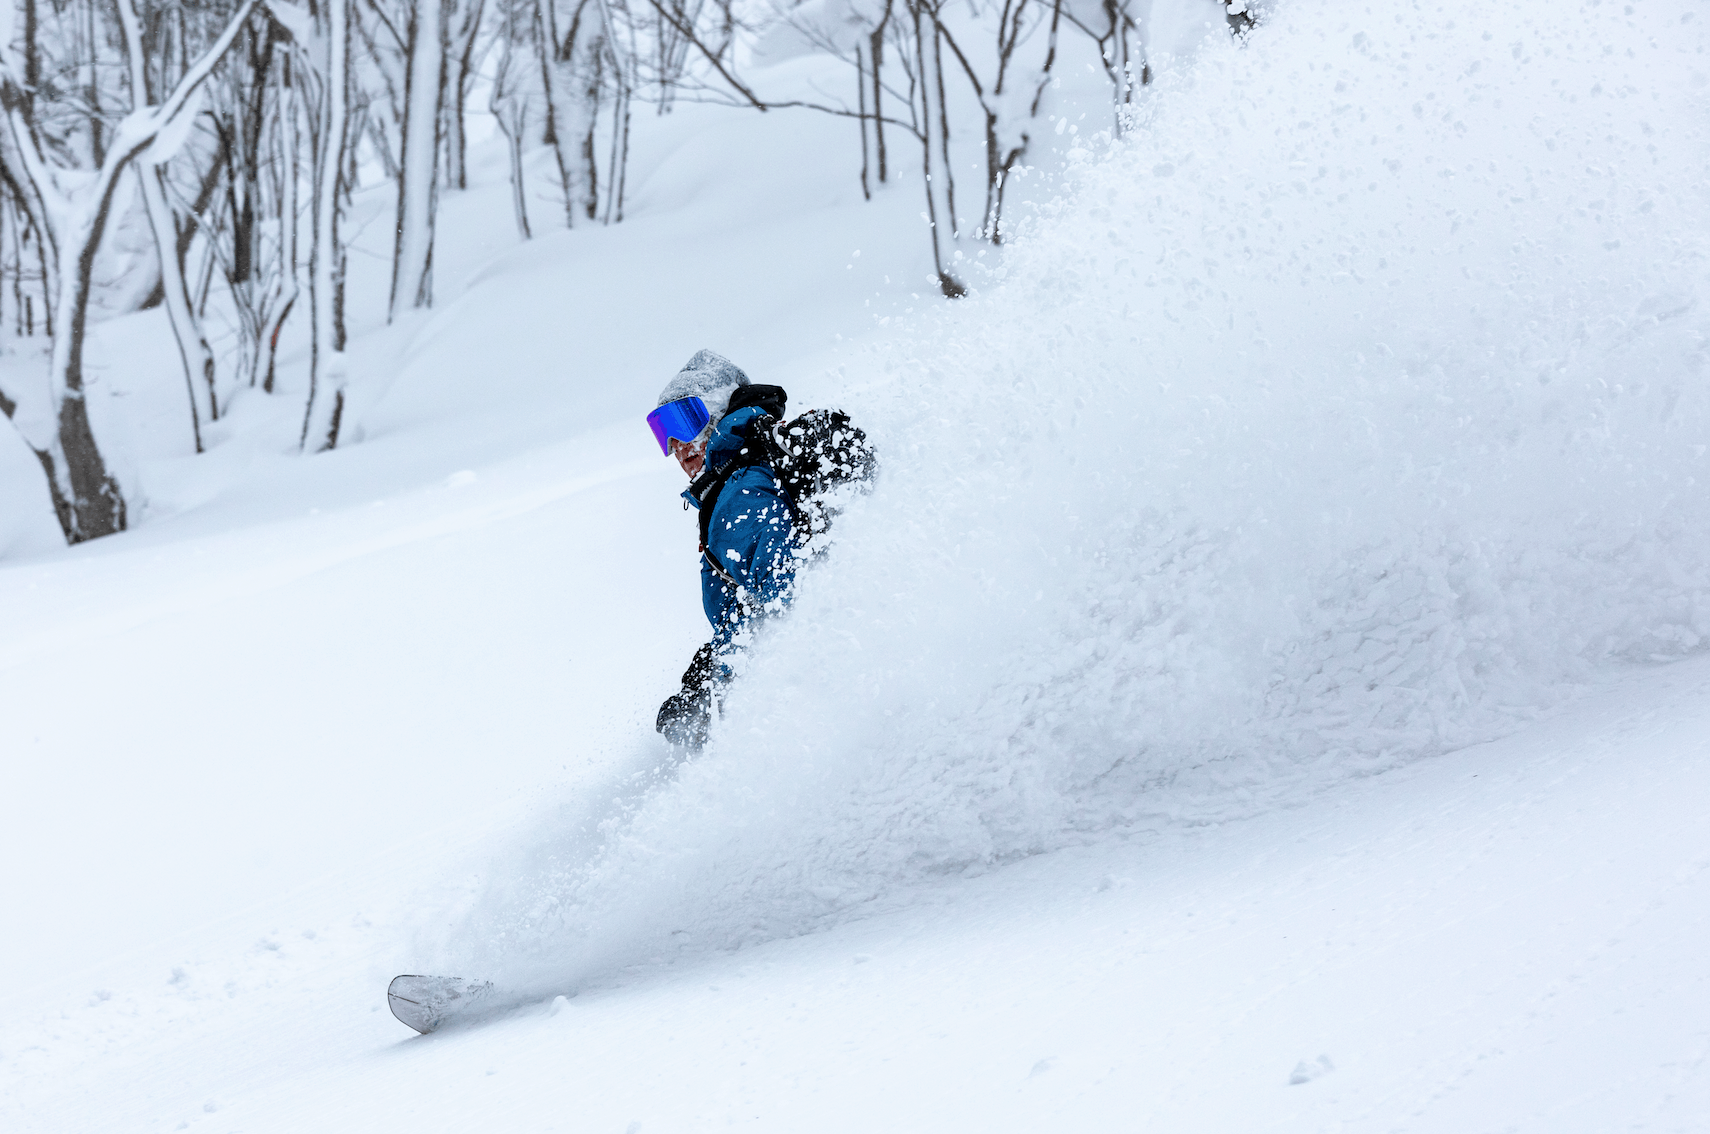 Skiing in Niseko in the Japan Snow Season 2019 | Mountainwatch